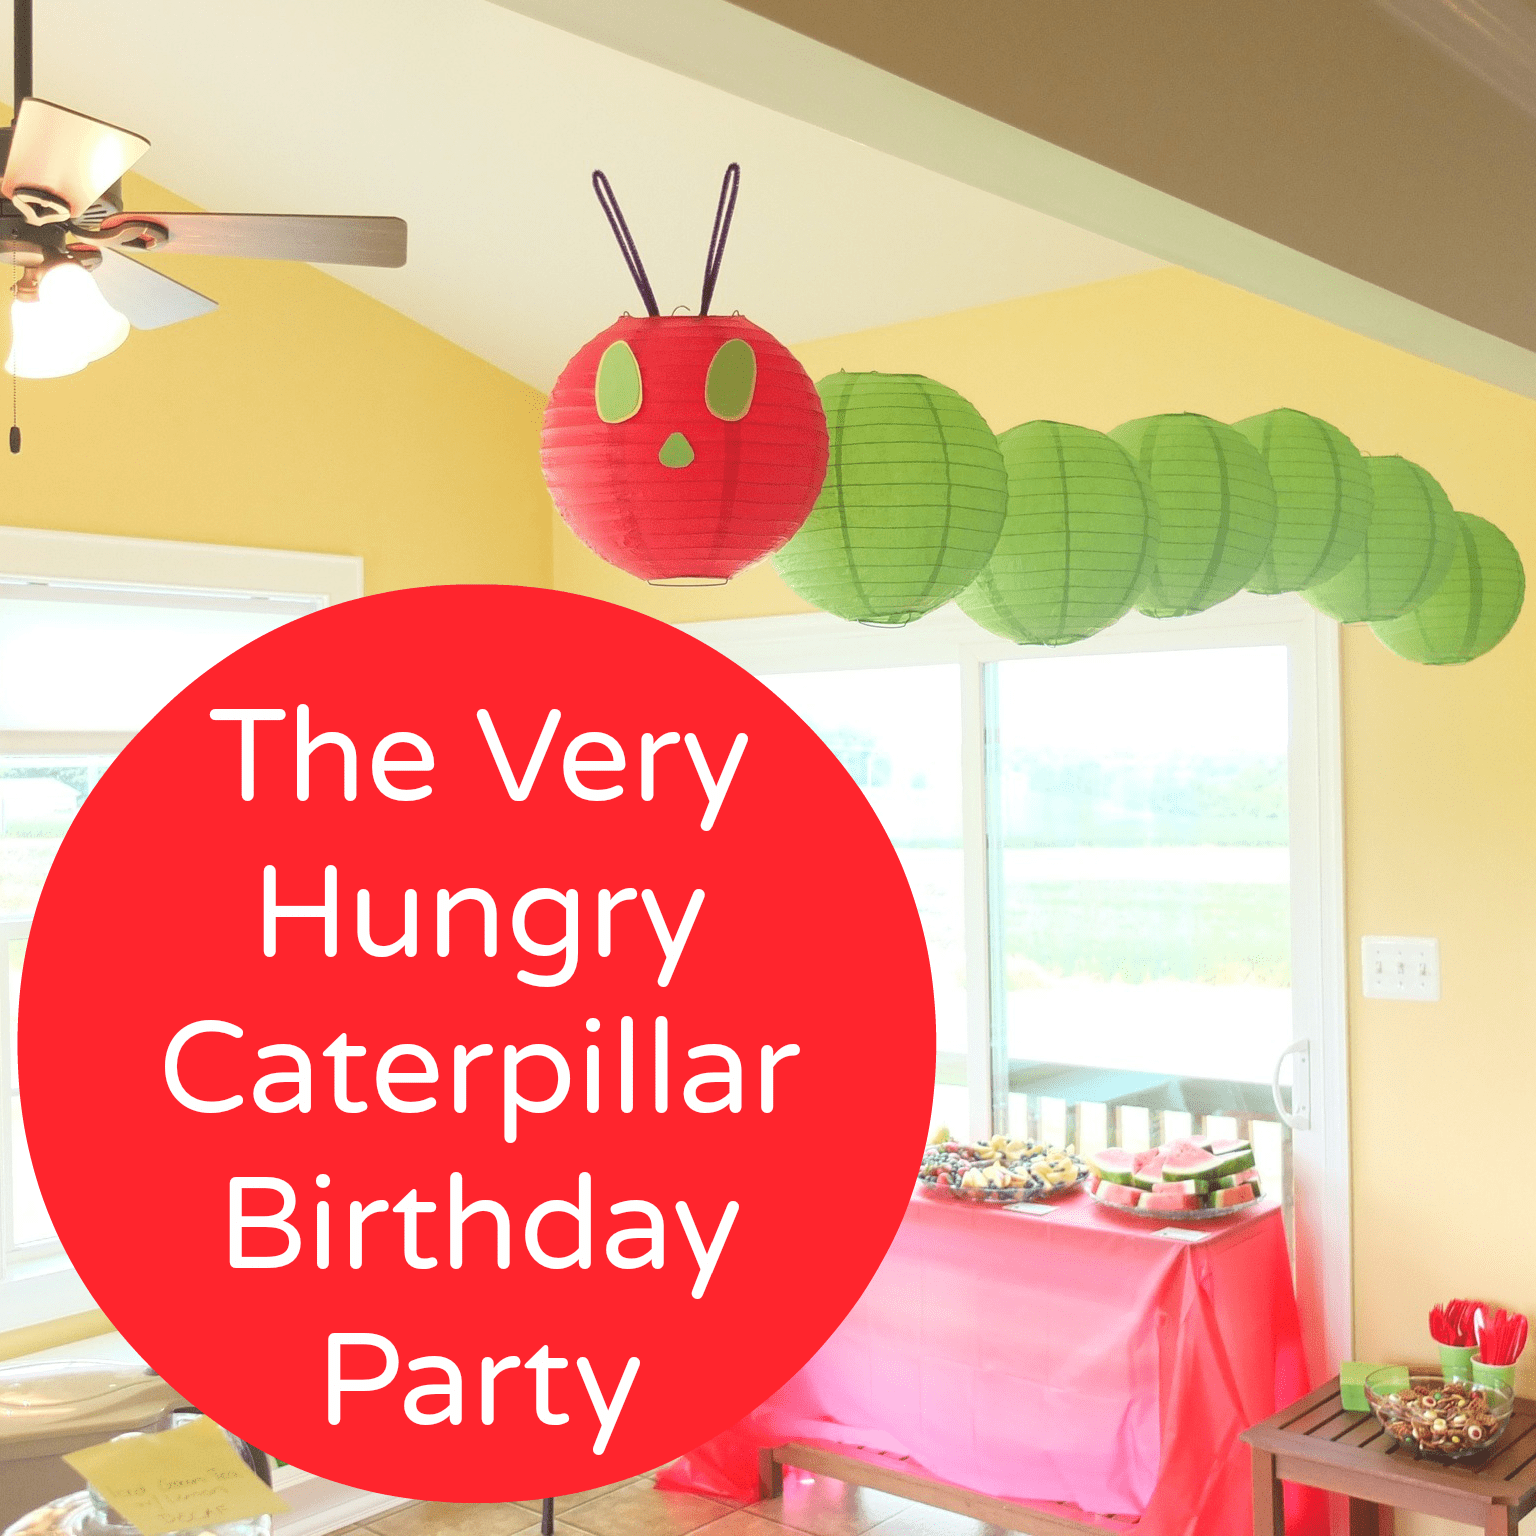 The Very Hungry Caterpillar Birthday Party - Pick Any Two